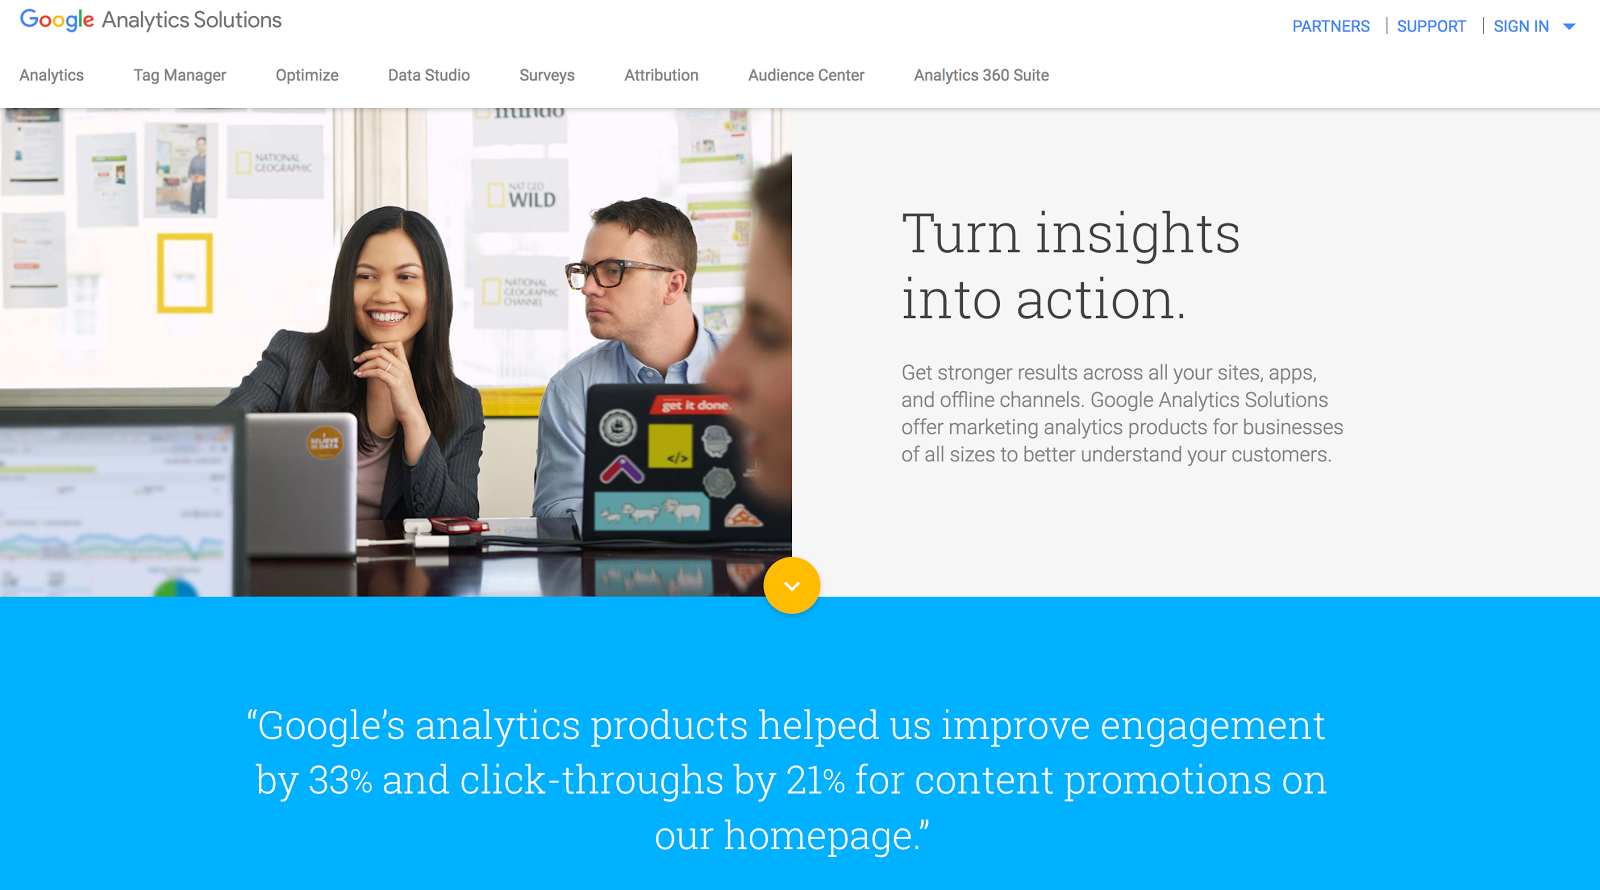 Arc and Google Analytics Solutions Marketing Analytics Measurement